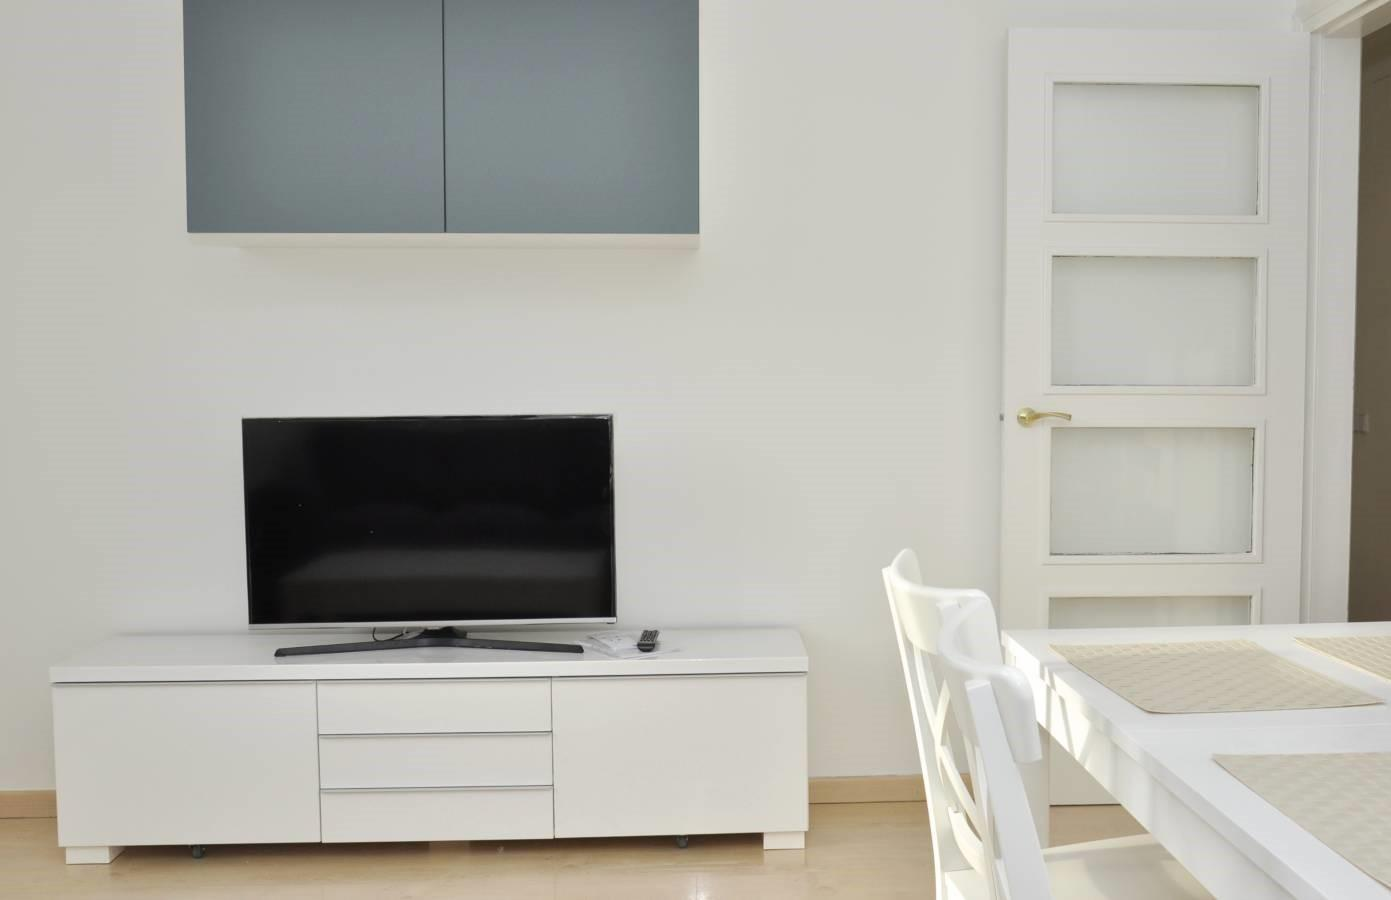 A Beautiful Furnished White 1 Bedroom Apartment.